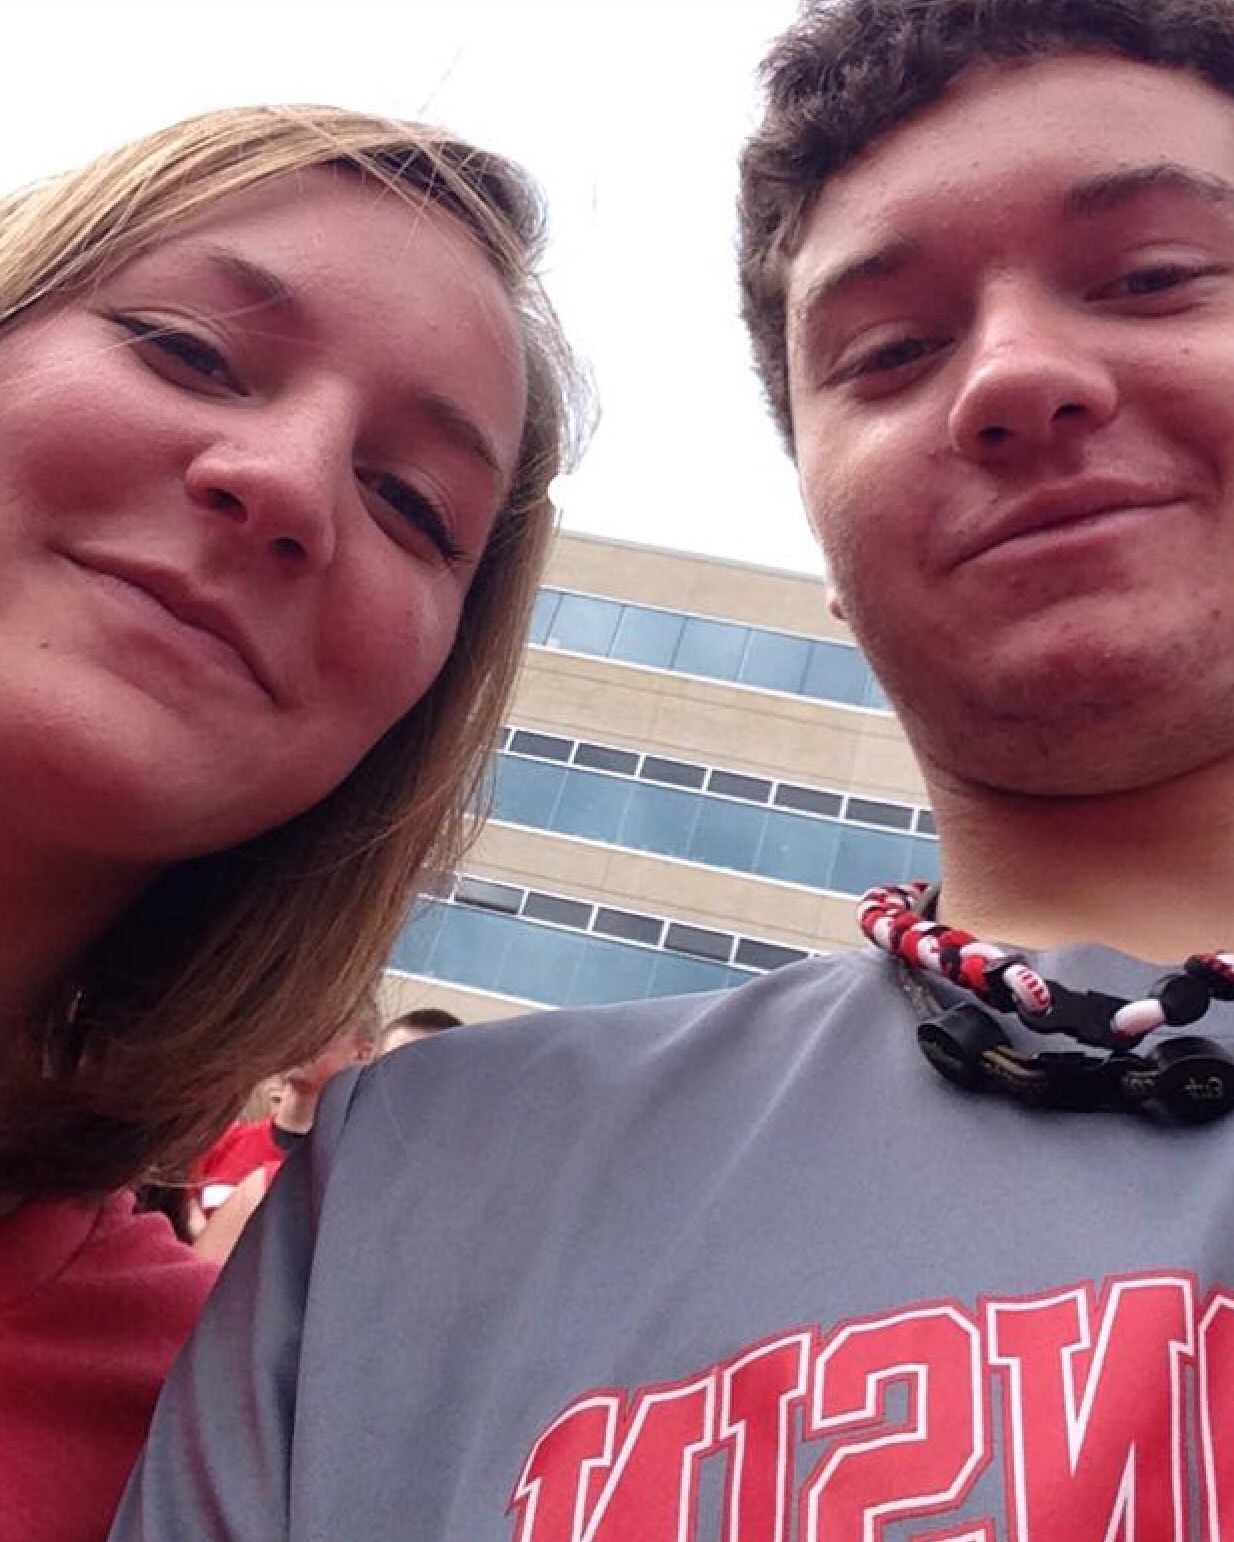 My 20 Year Old Son And His Girlfriend At Uw Madison 20 Years